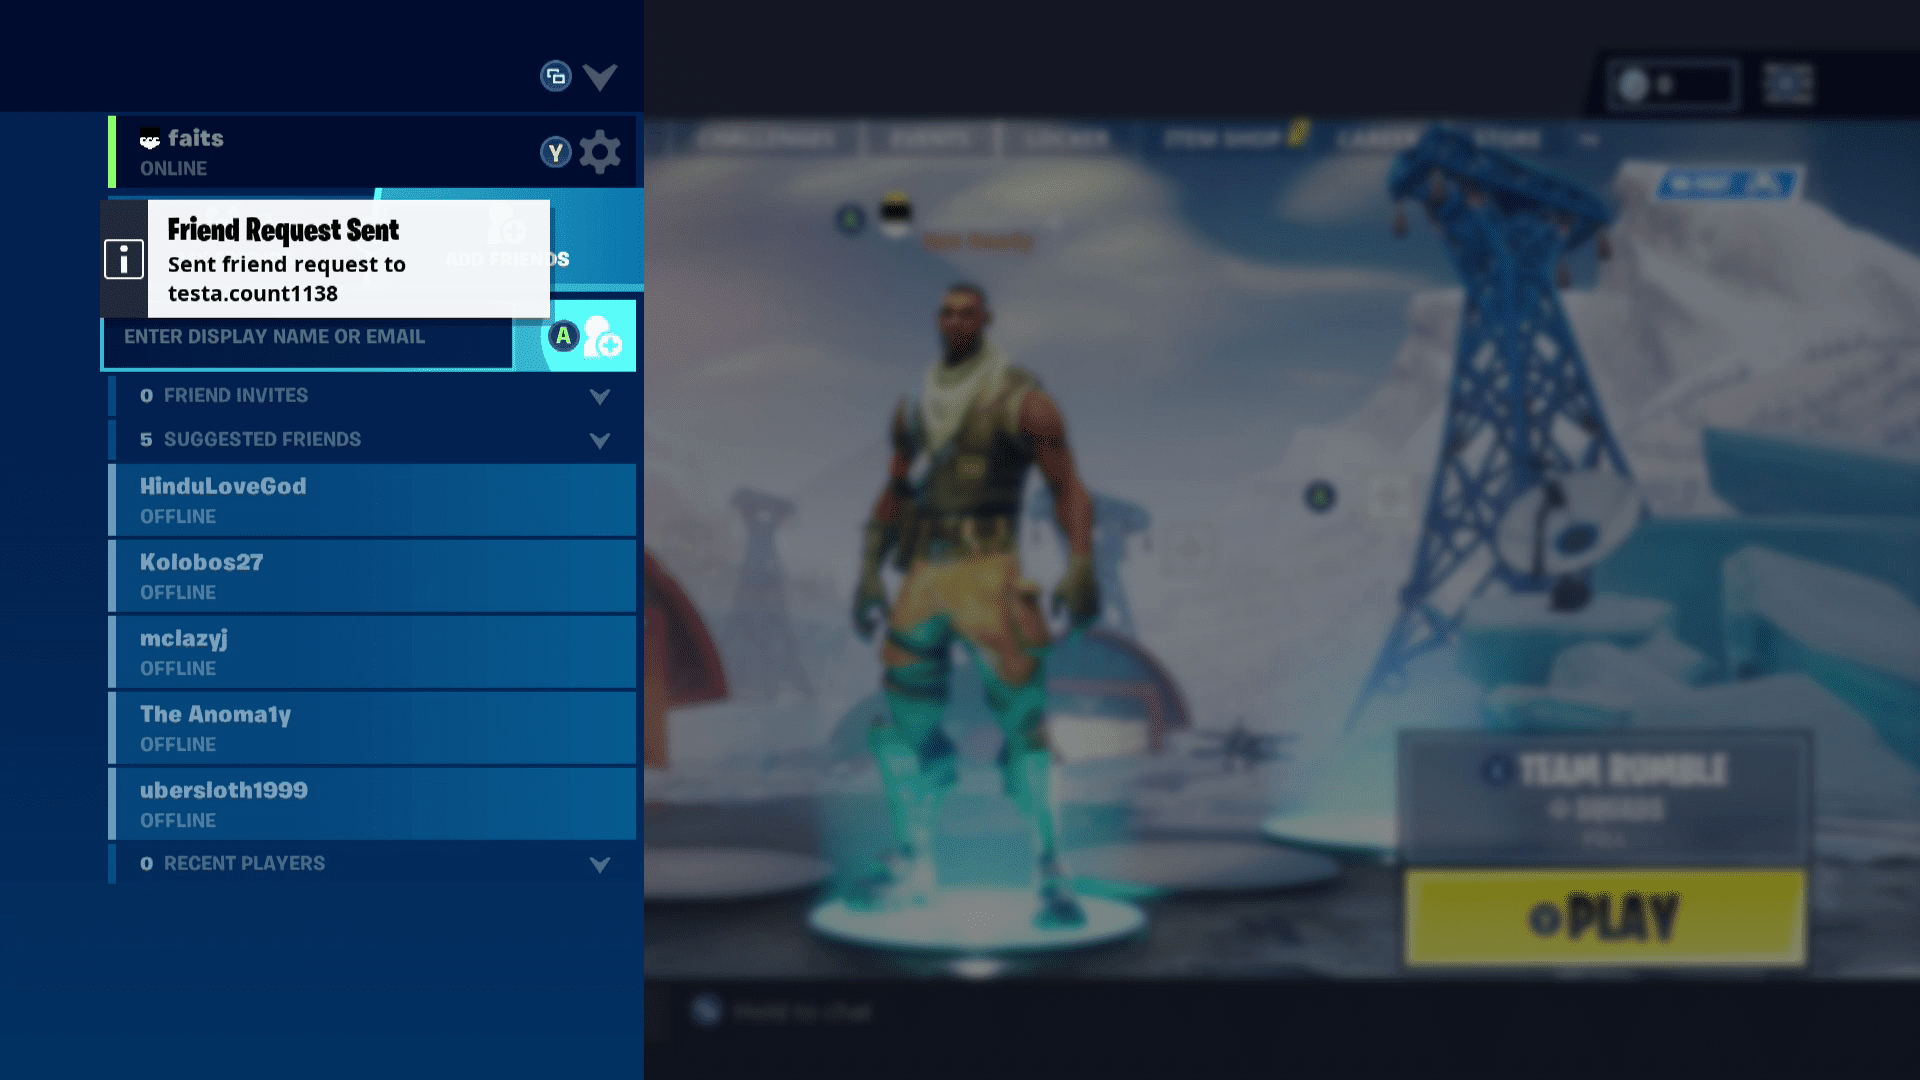 How to Add Friends on Fortnite